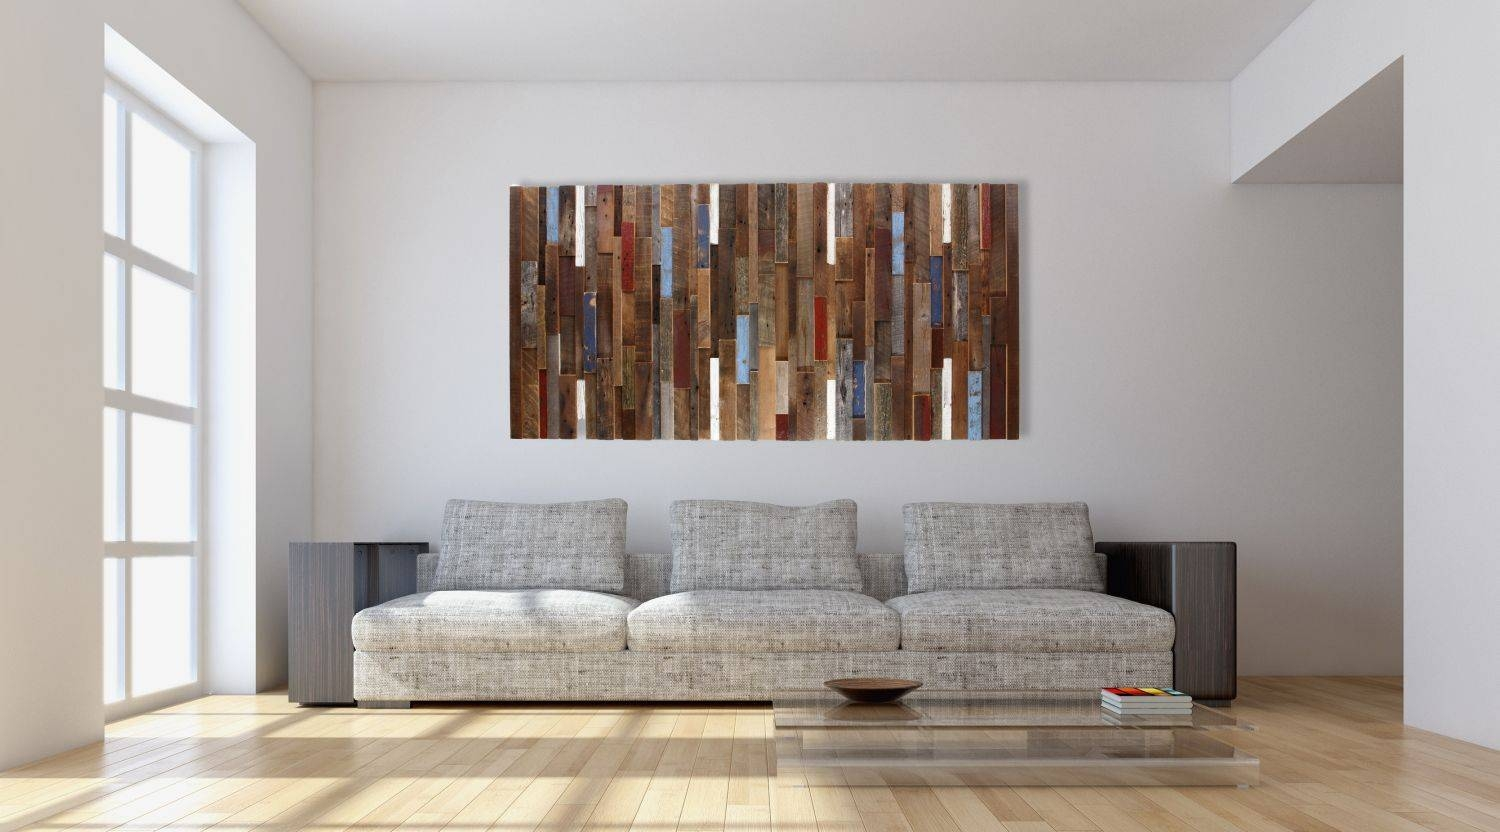 Hand Made Wood Wall Art Made Of Old Reclaimed Barnwood, Different With Regard To Recent Sofa Size Wall Art (View 13 of 20)